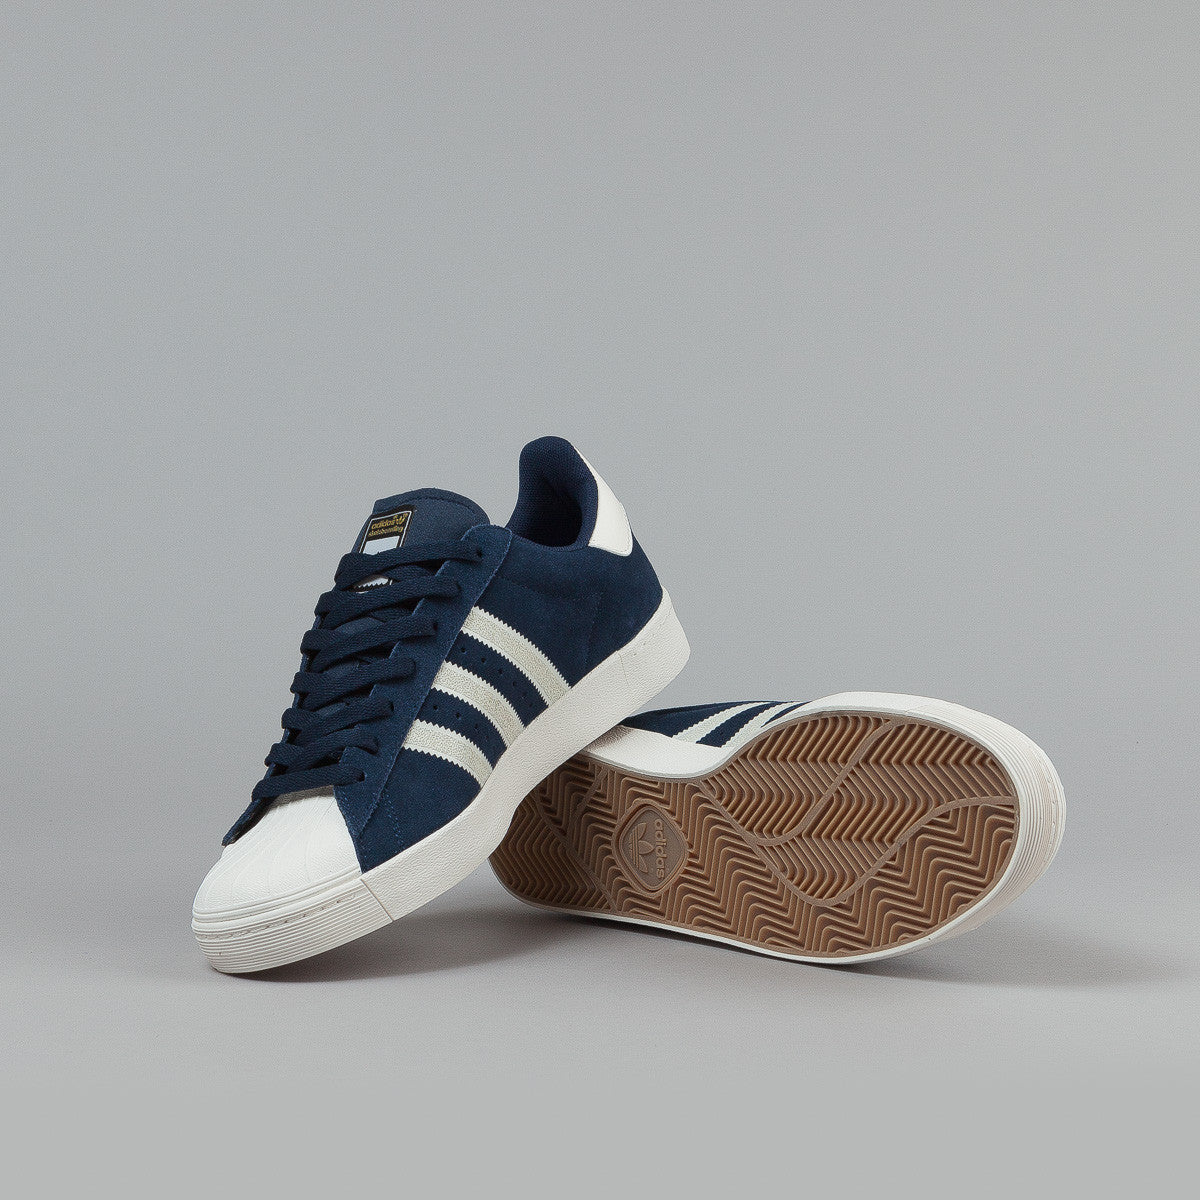 SUPERSTAR VULC ADV SHOE Surf Dive 'n' Ski